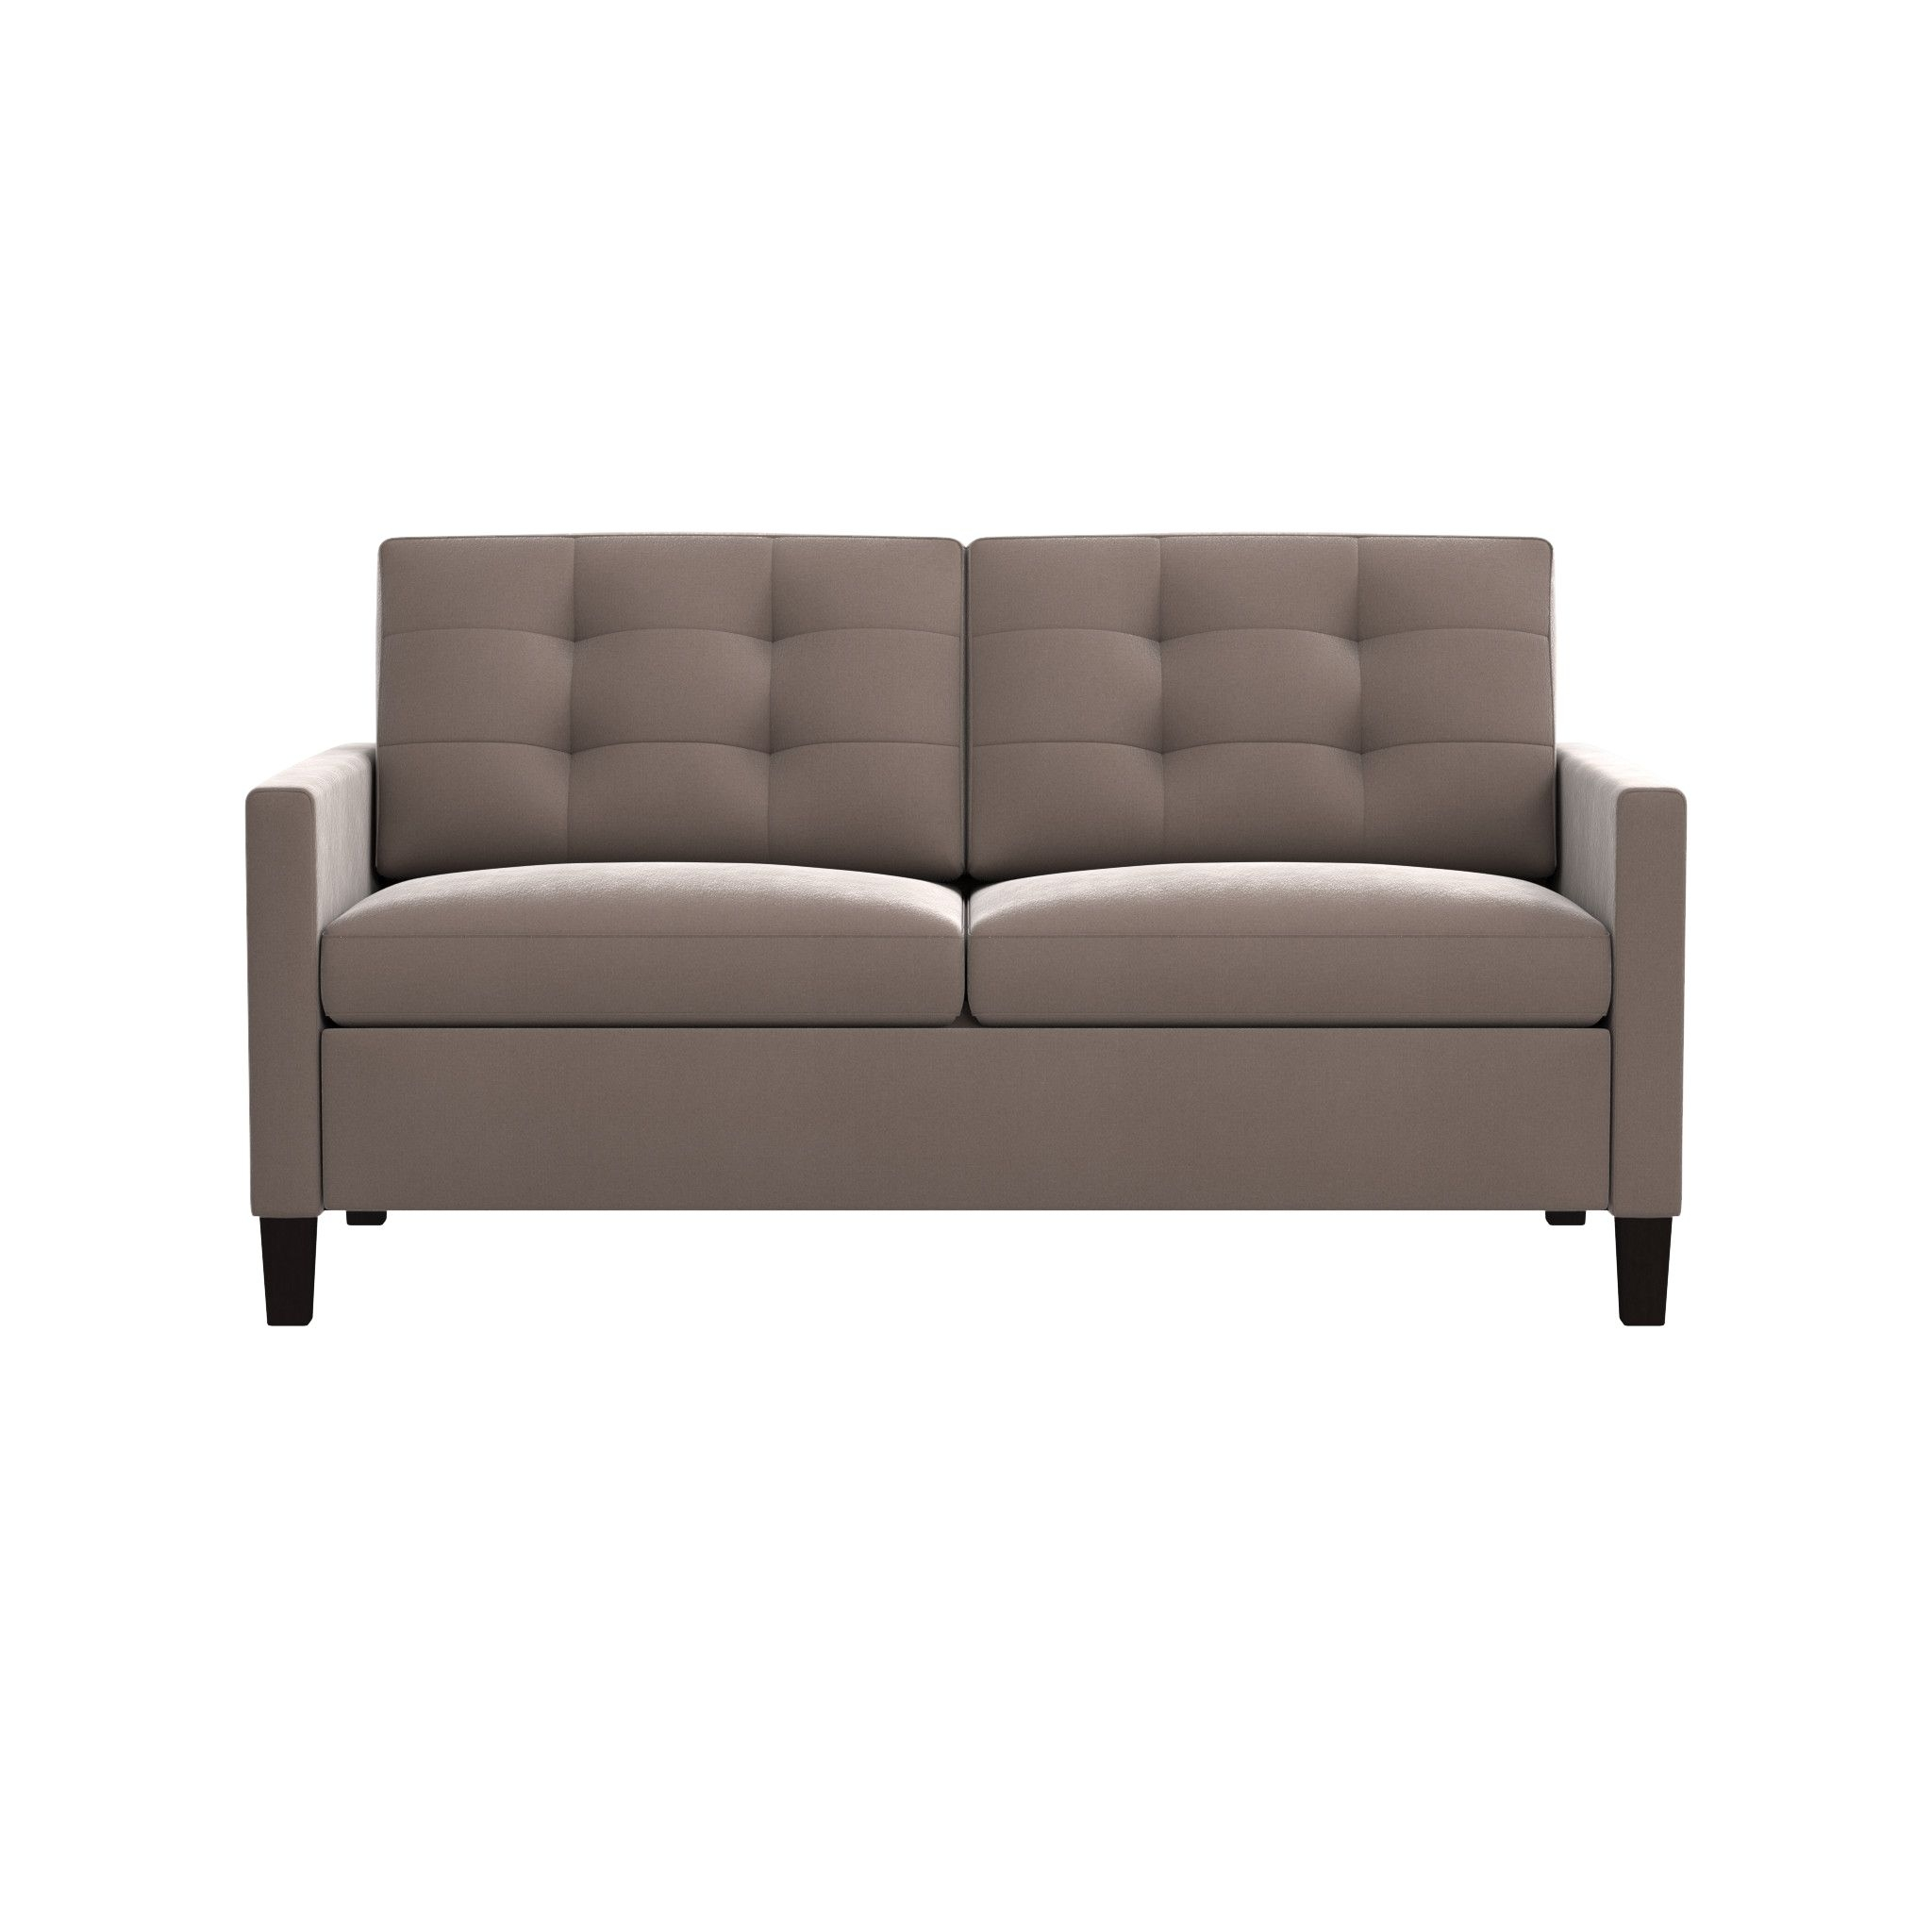 Karnes Grey Queen Sleeper Sofa | Crate And Barrel for Crate And Barrel Sofa Sleepers (Image 8 of 15)